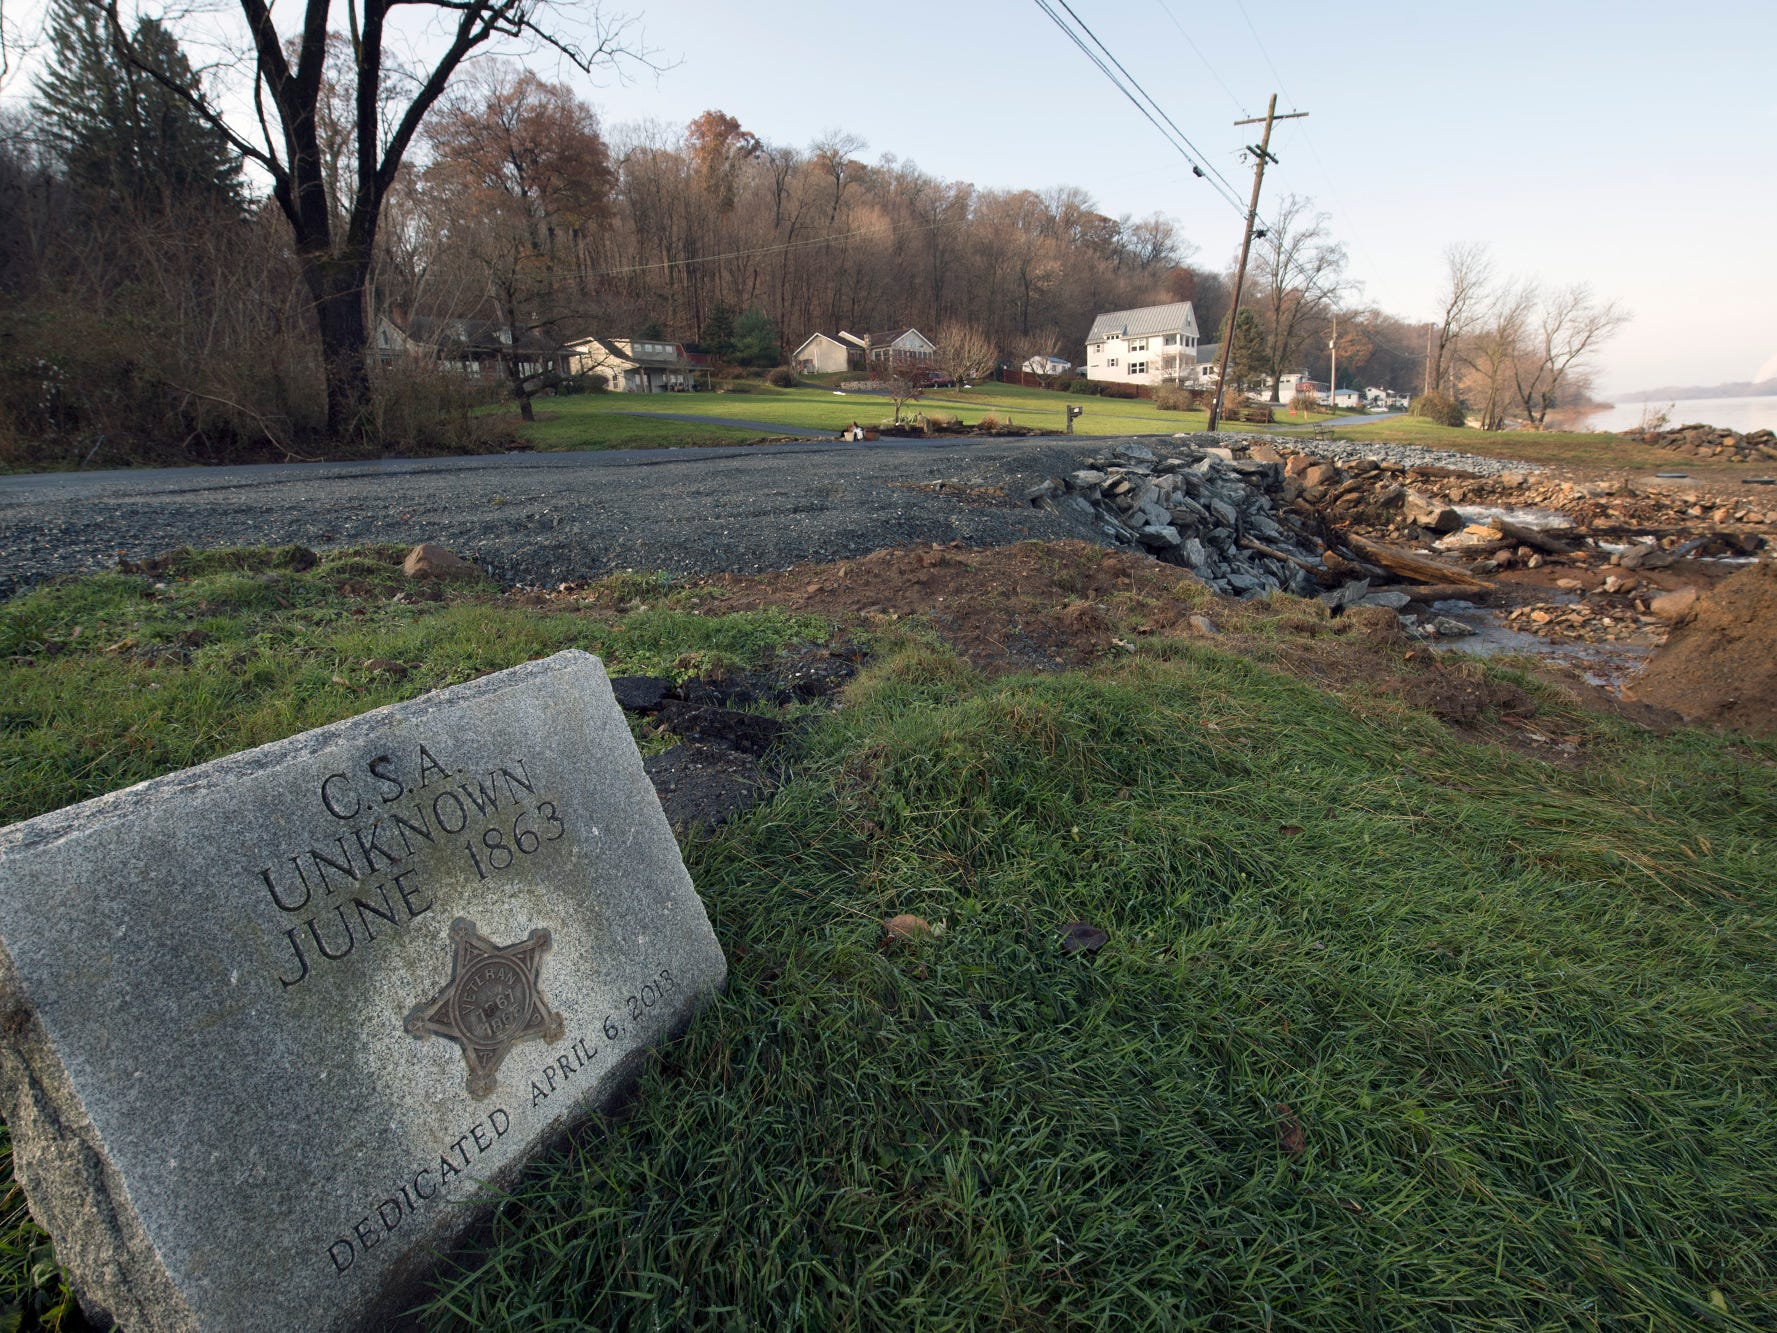 A Civil War marker is back in place near repaired washed out bridge on River Drive in Hellam Township Sunday November 25, 2018.